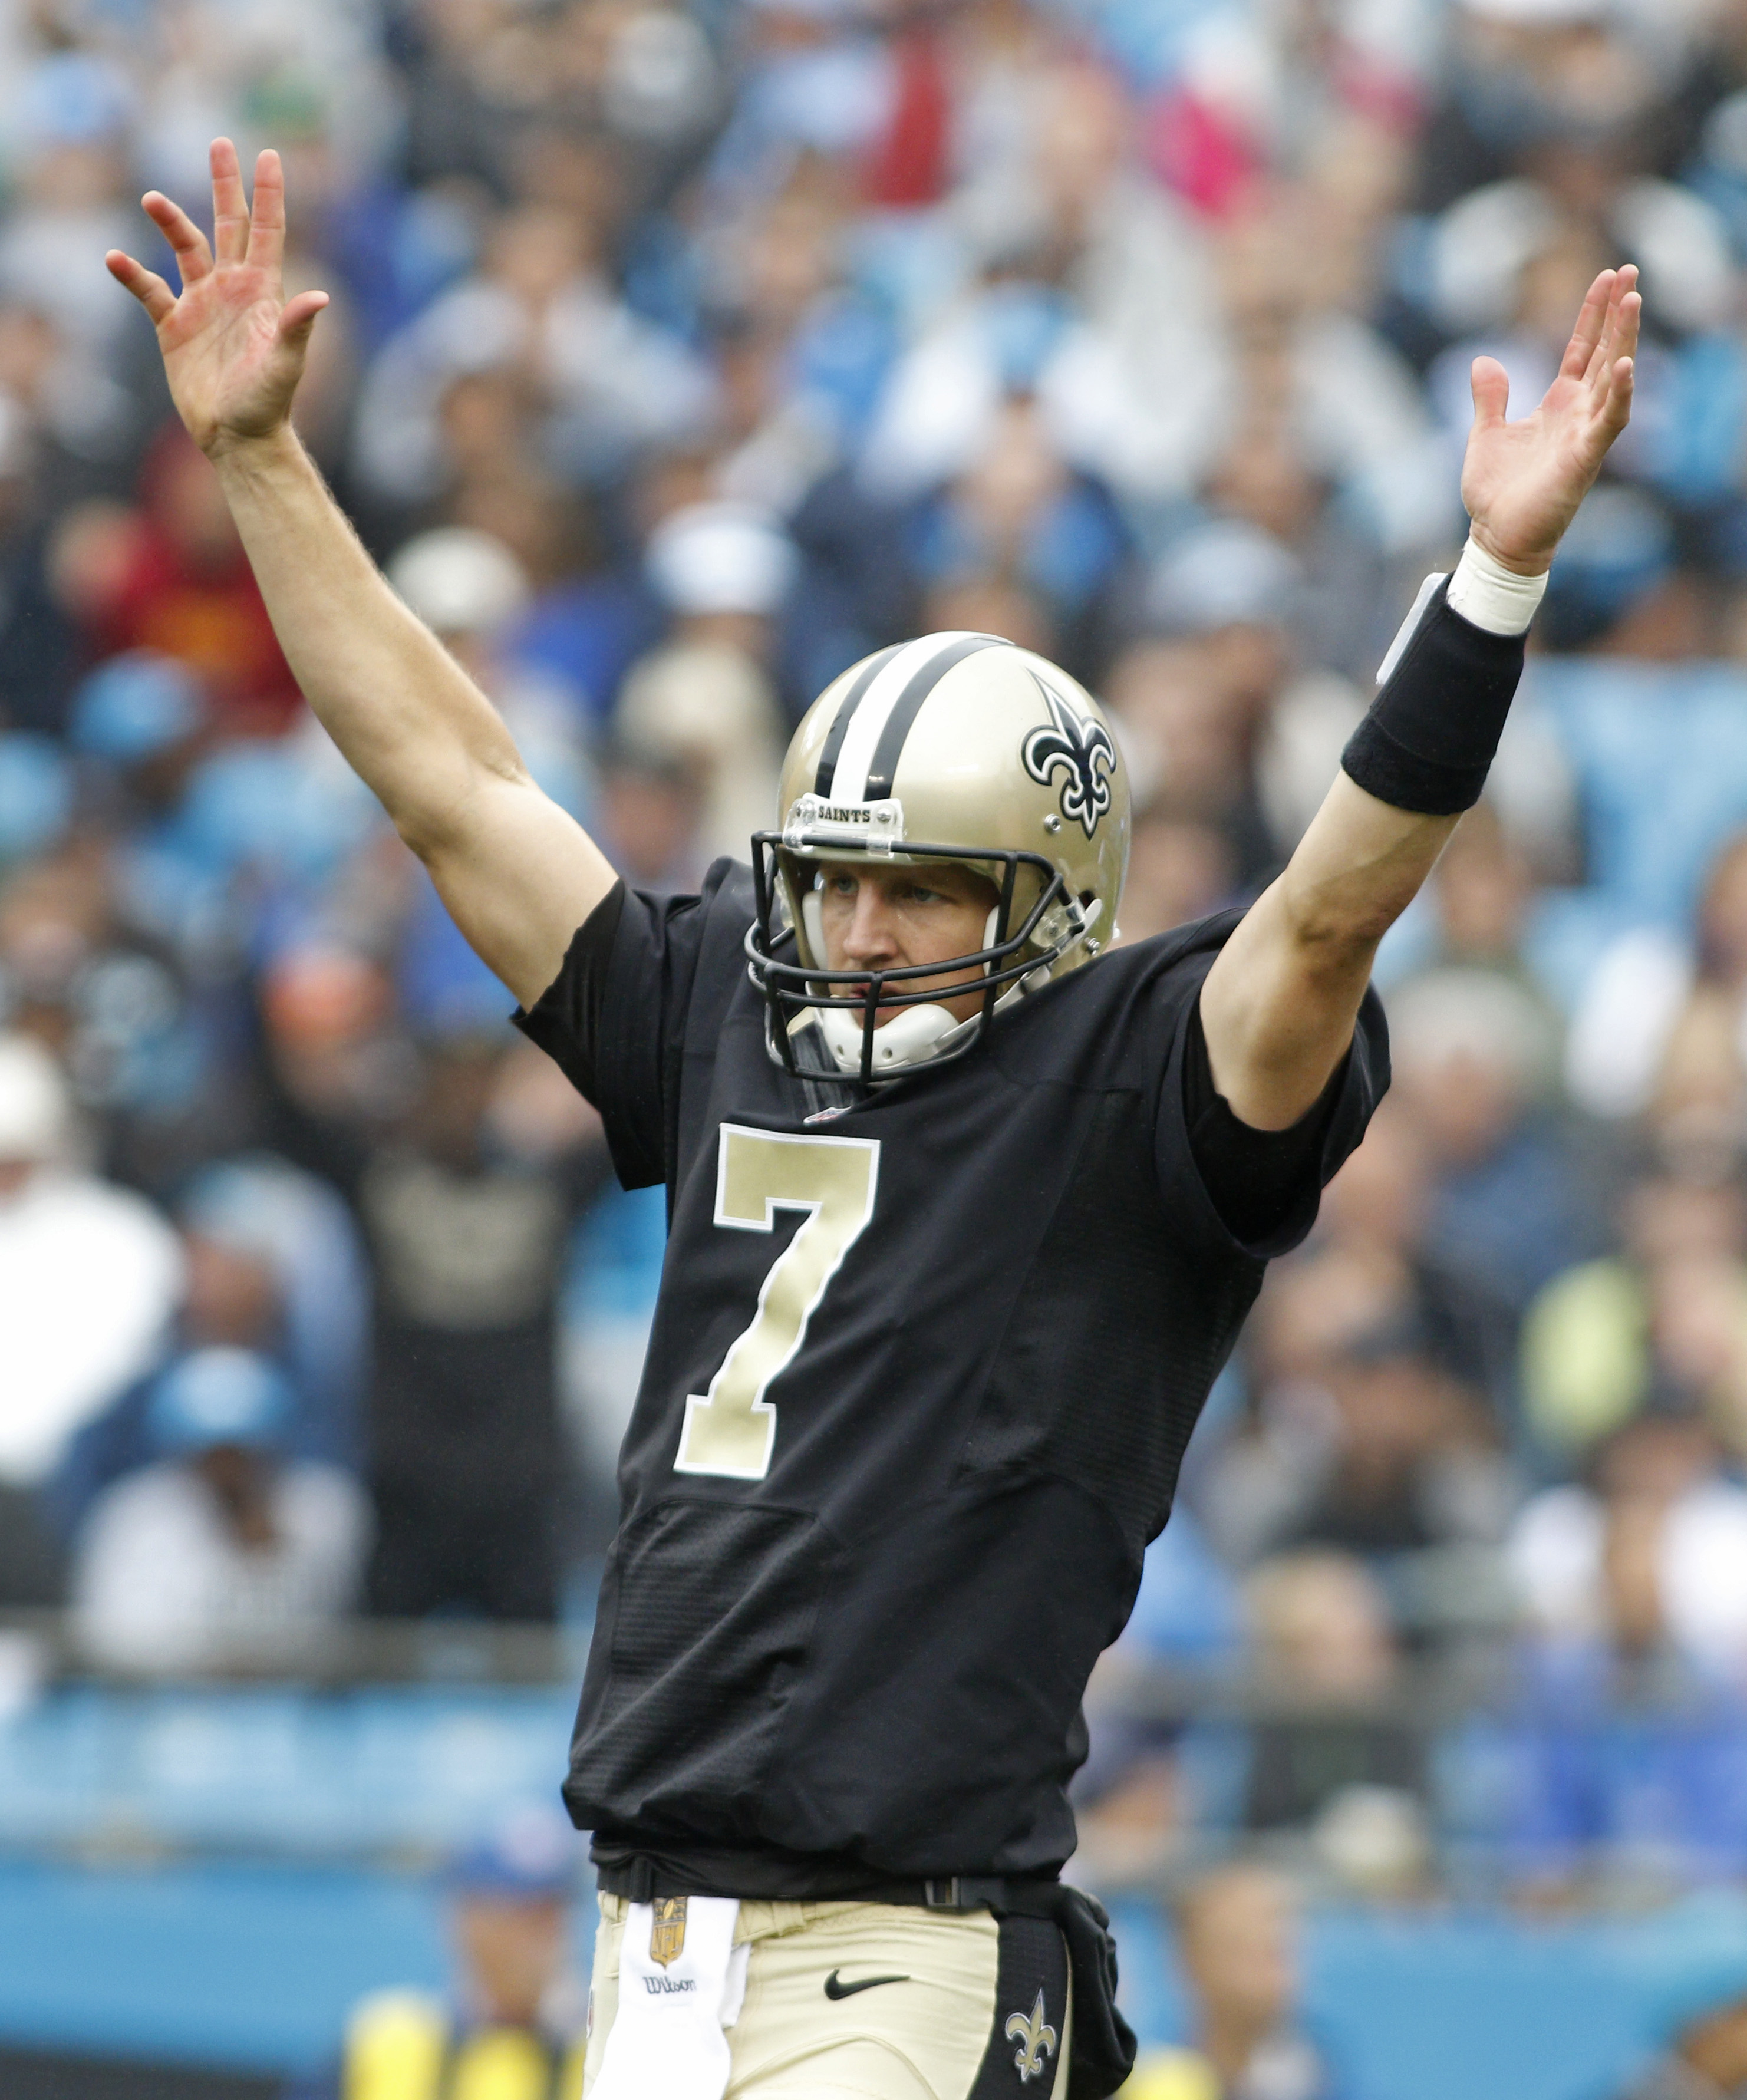 New Orleans Saints' Luke McCown (7) celebrates a touchdown against the Carolina Panthers in the first half of an NFL football game in Charlotte, N.C., Sunday, Sept. 27, 2015. (AP Photo/Bob Leverone)